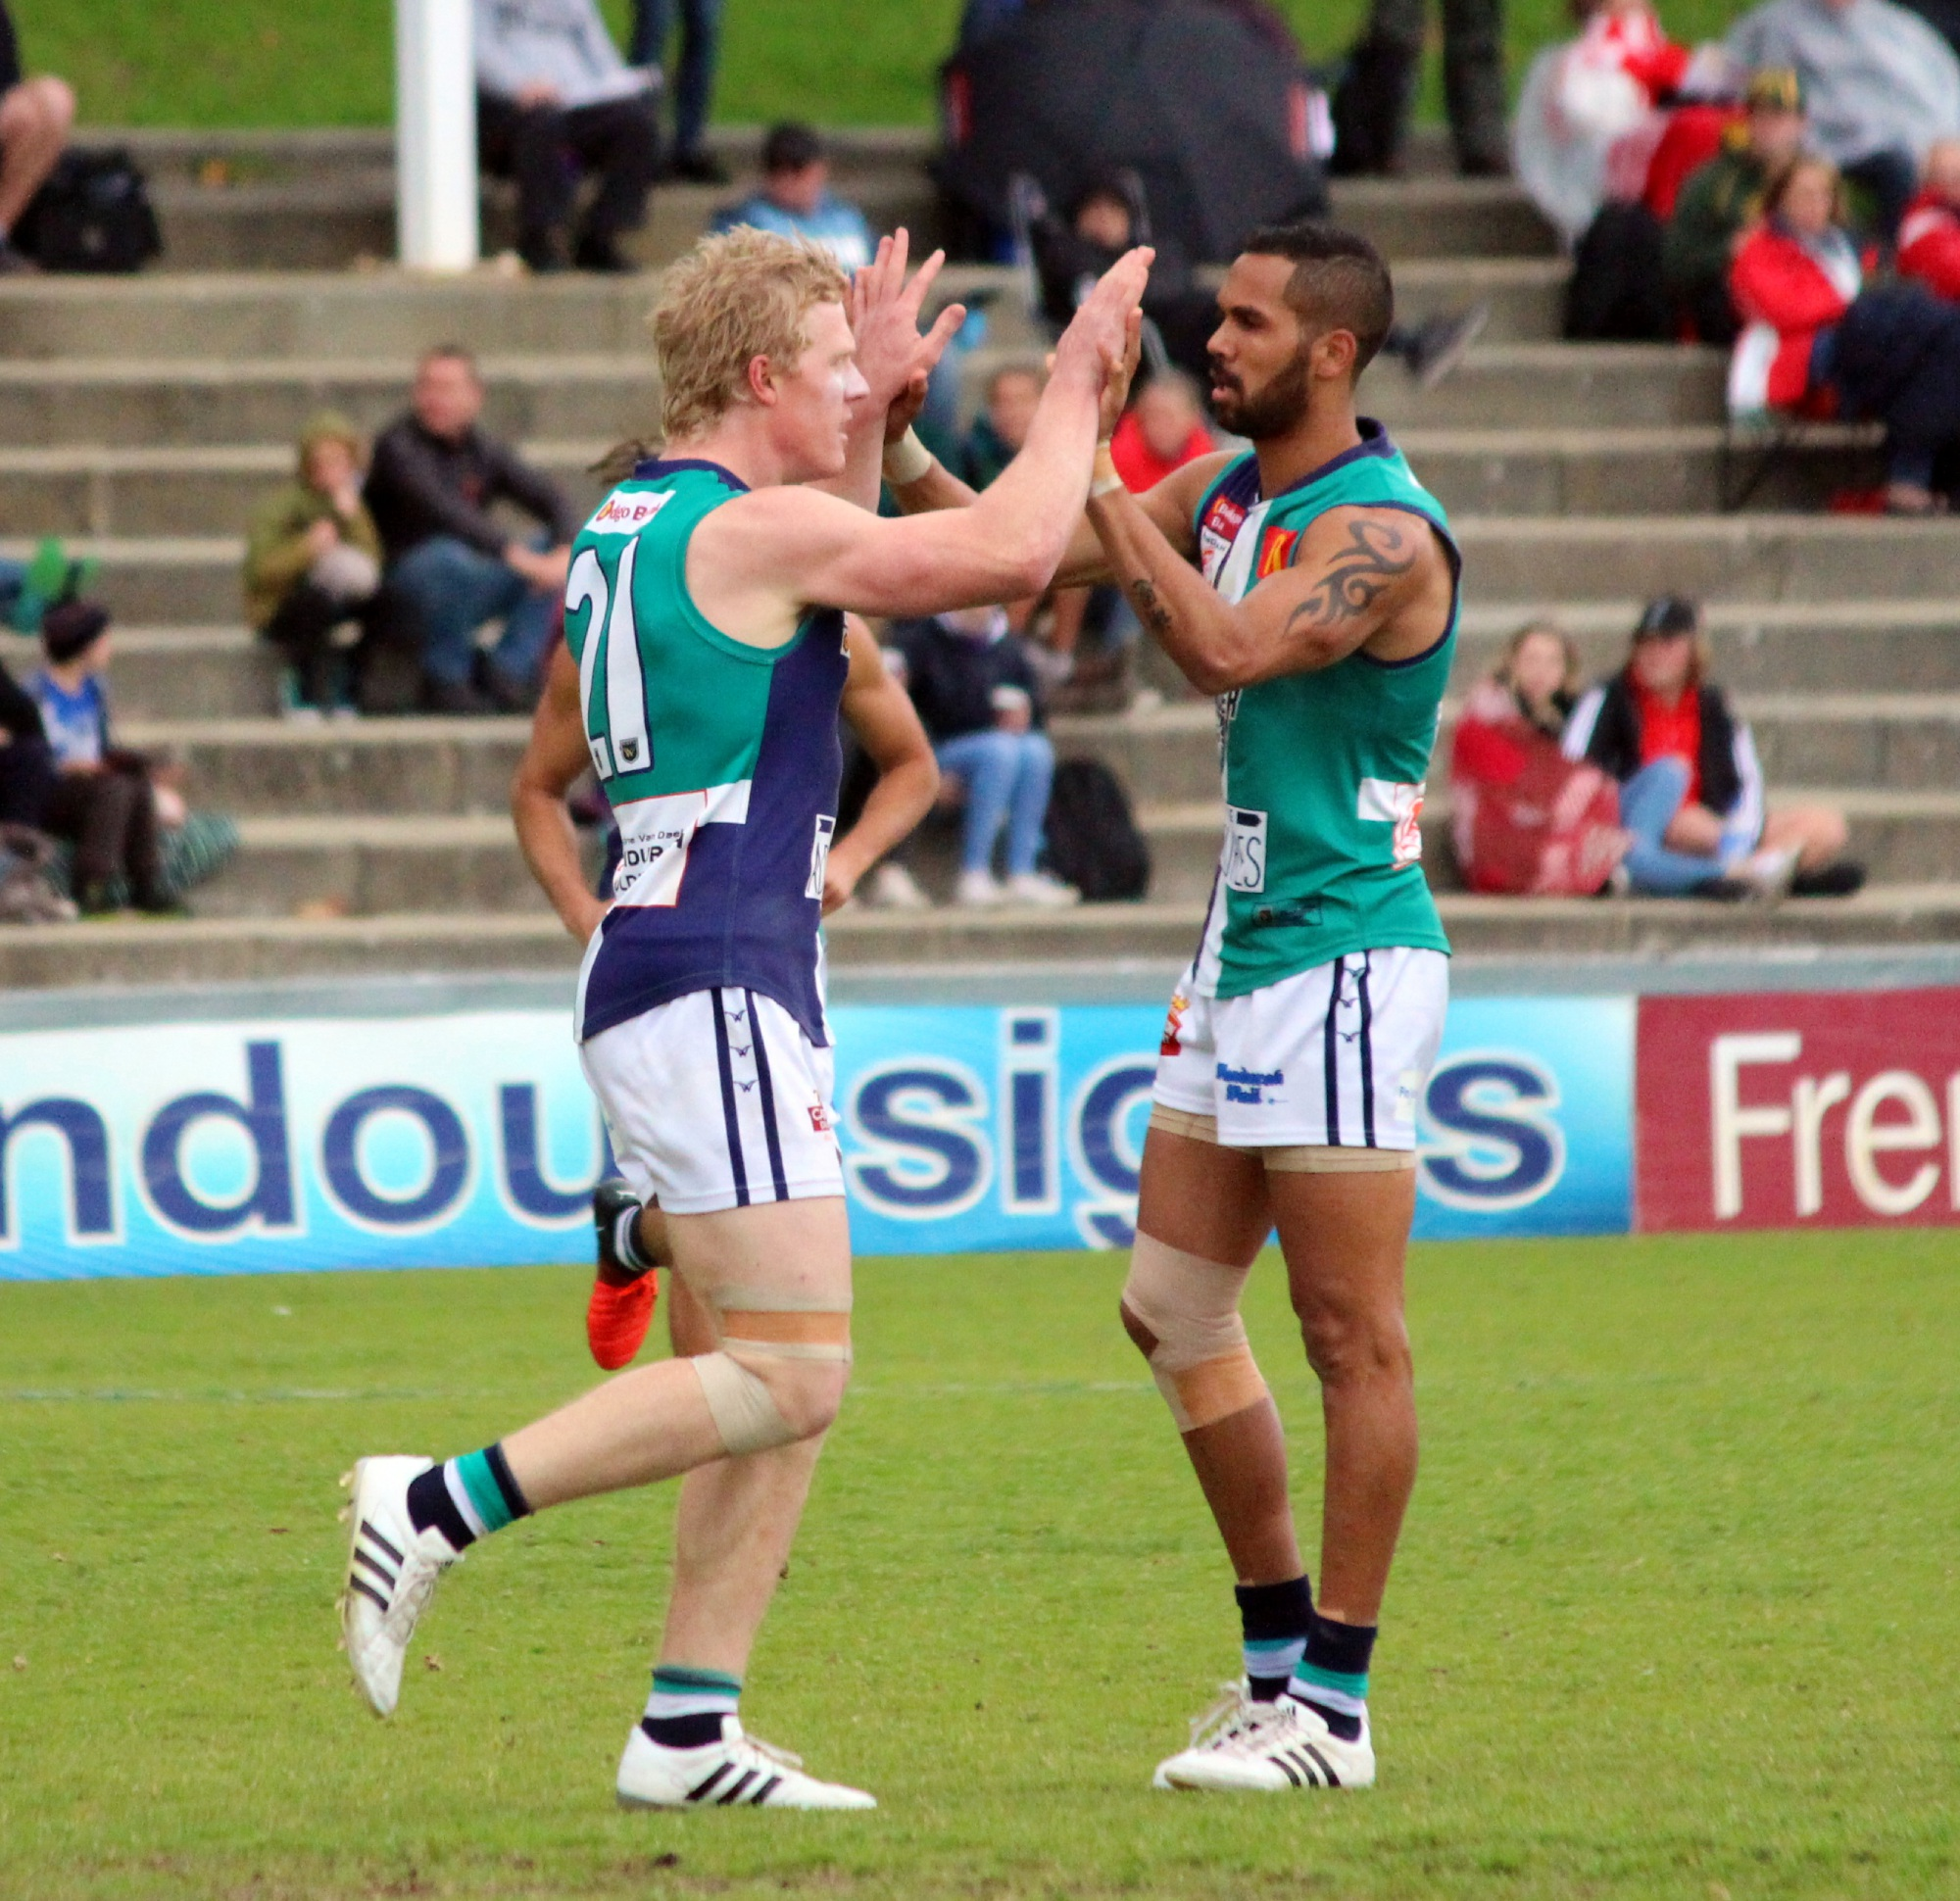 Blair Bell celebrates a goal against South Fremantle with teammate Shane Yarran.